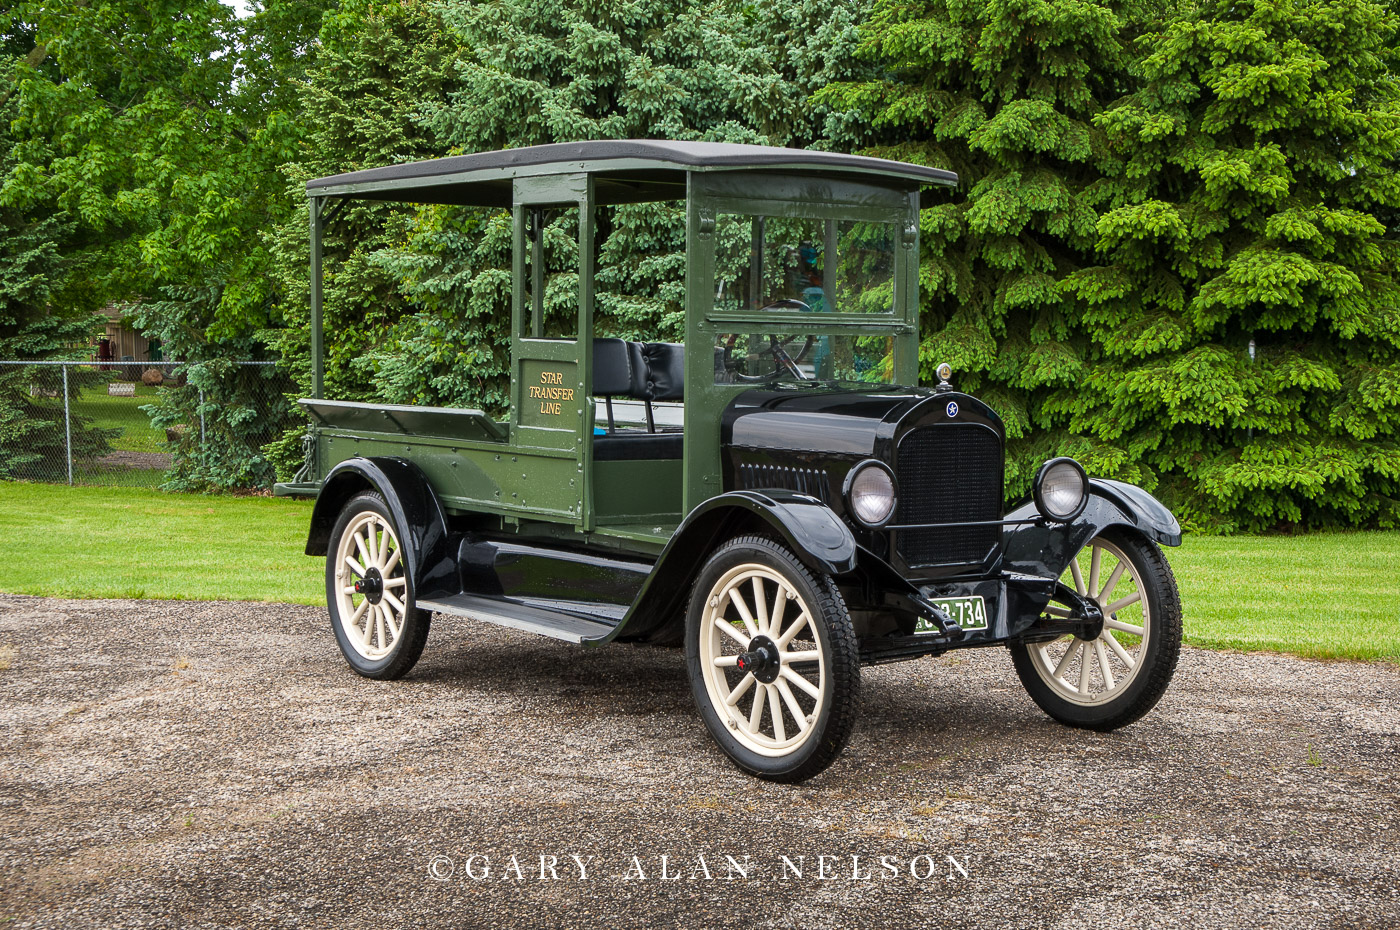 VT-11-17-ST 1923 Star Open Delivery